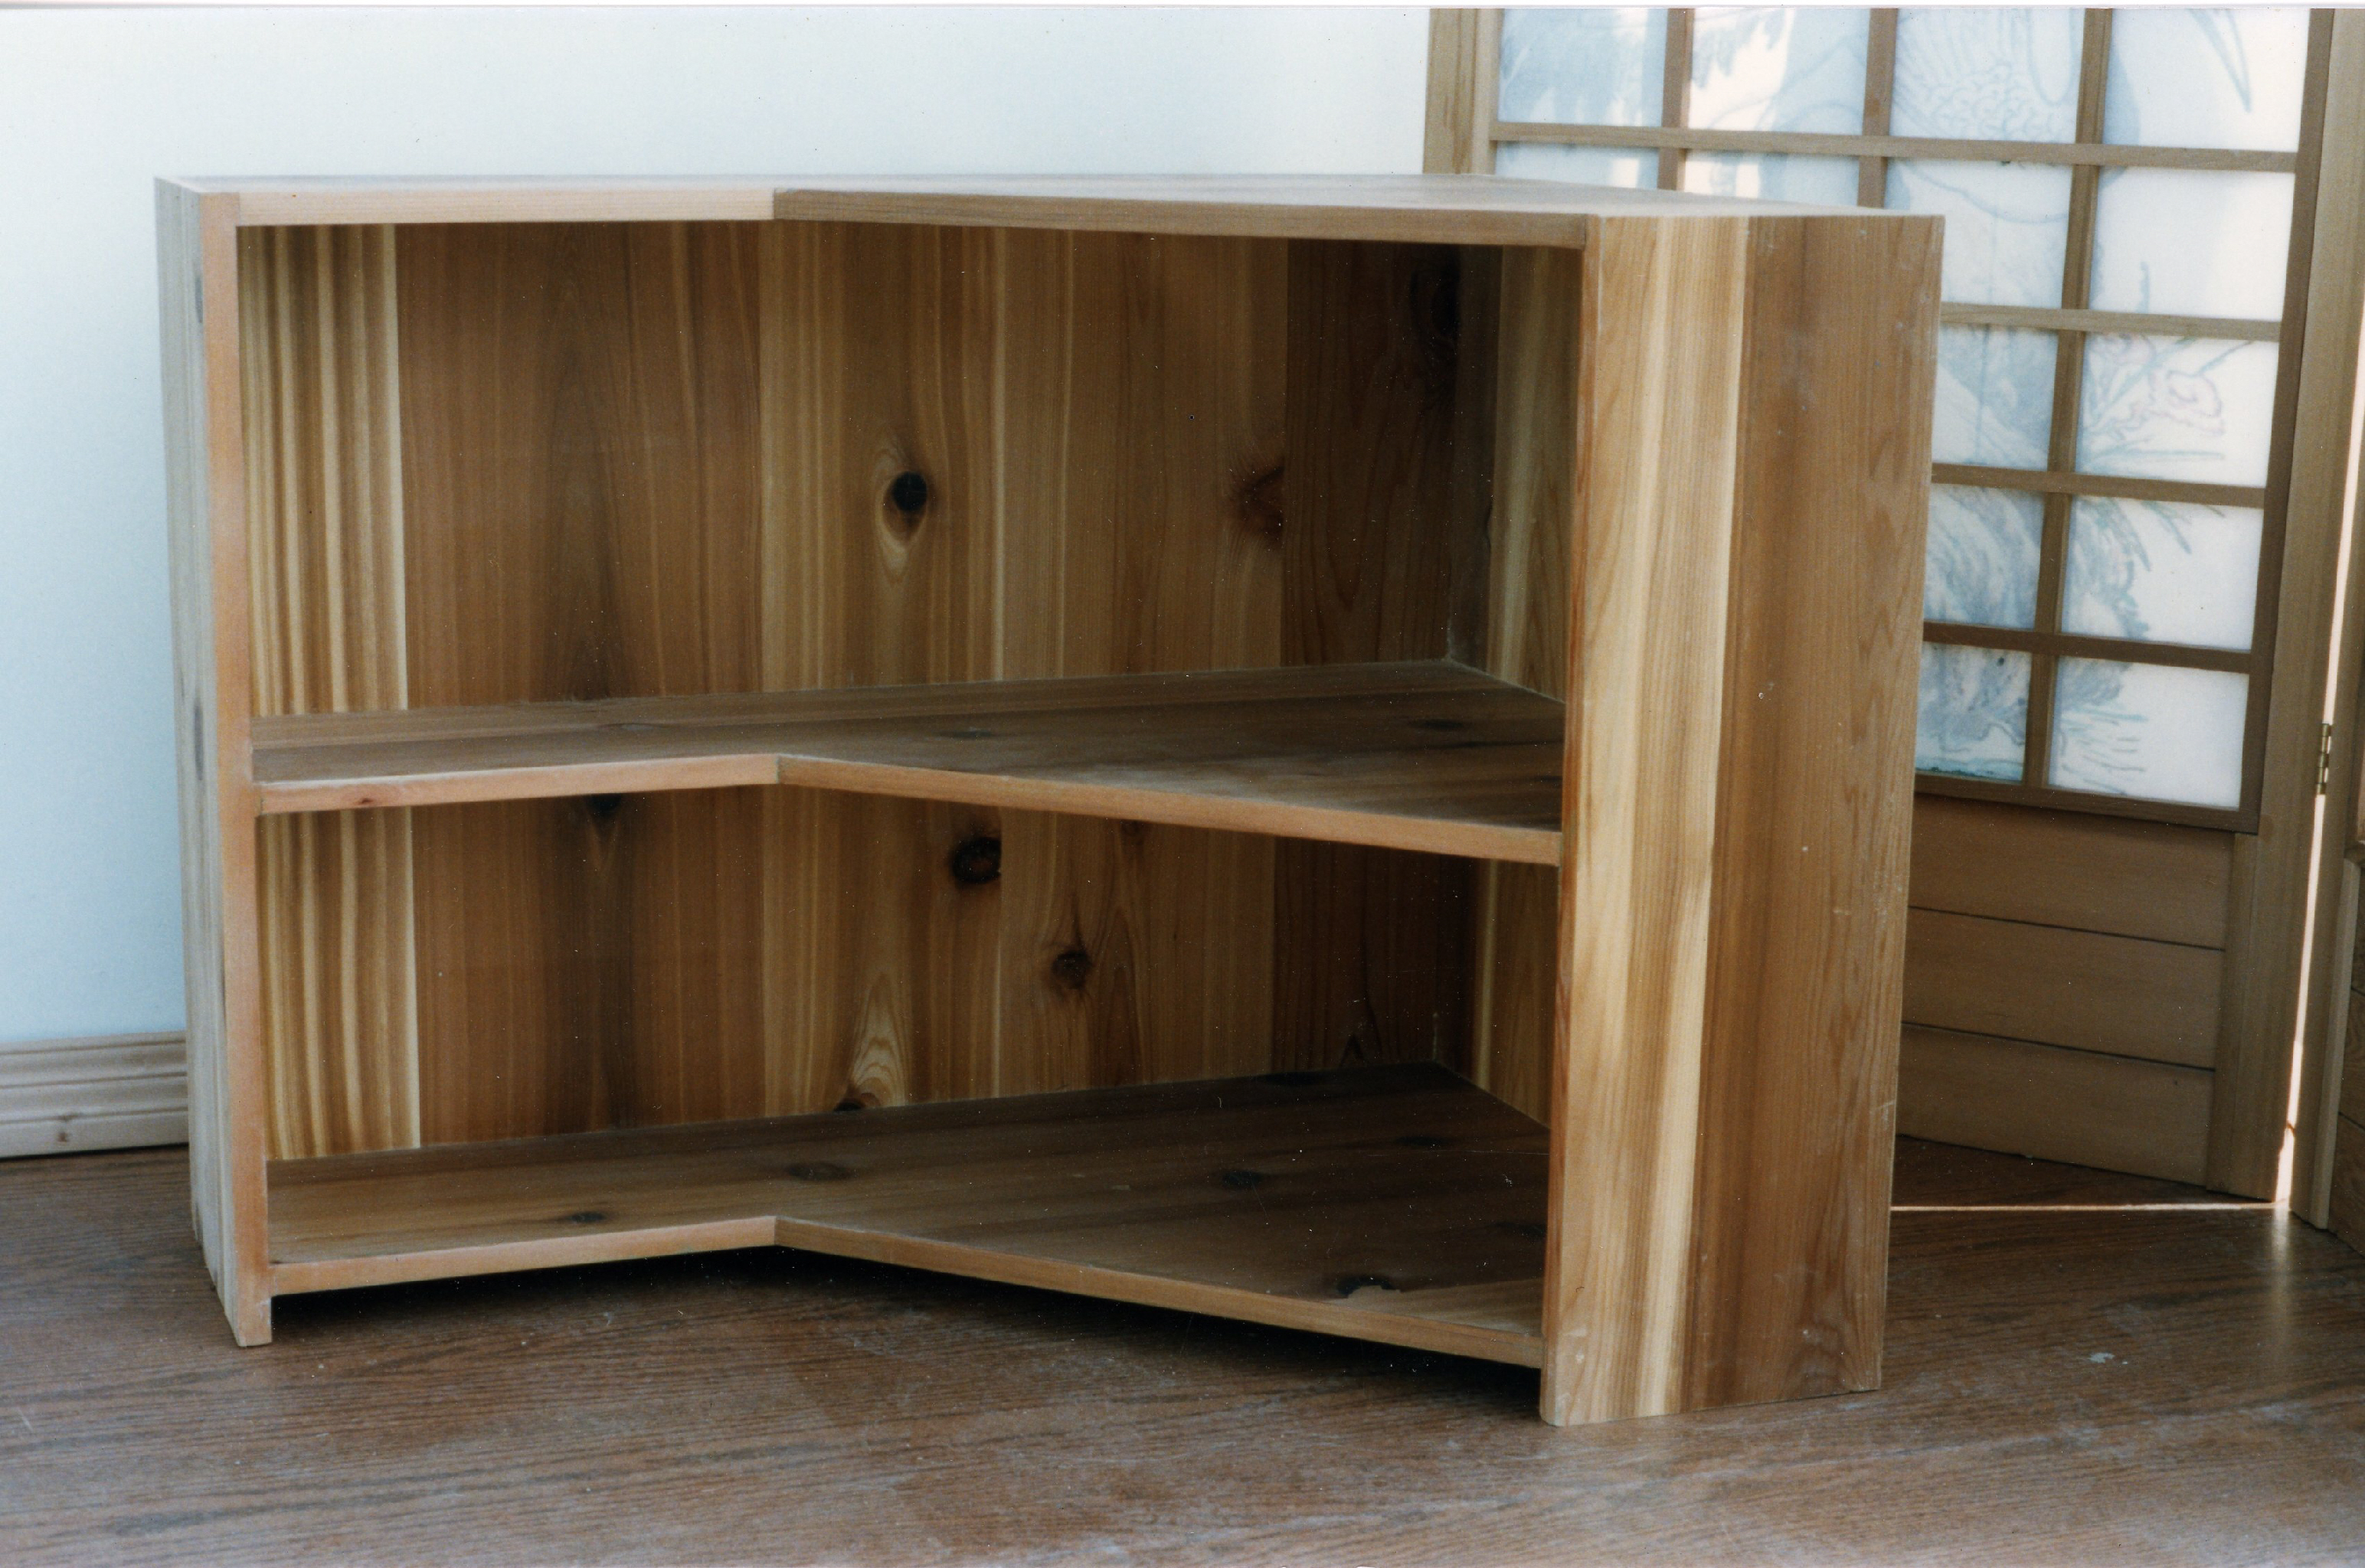 Gallery mission architectural millwork for Cedar kitchen cabinets